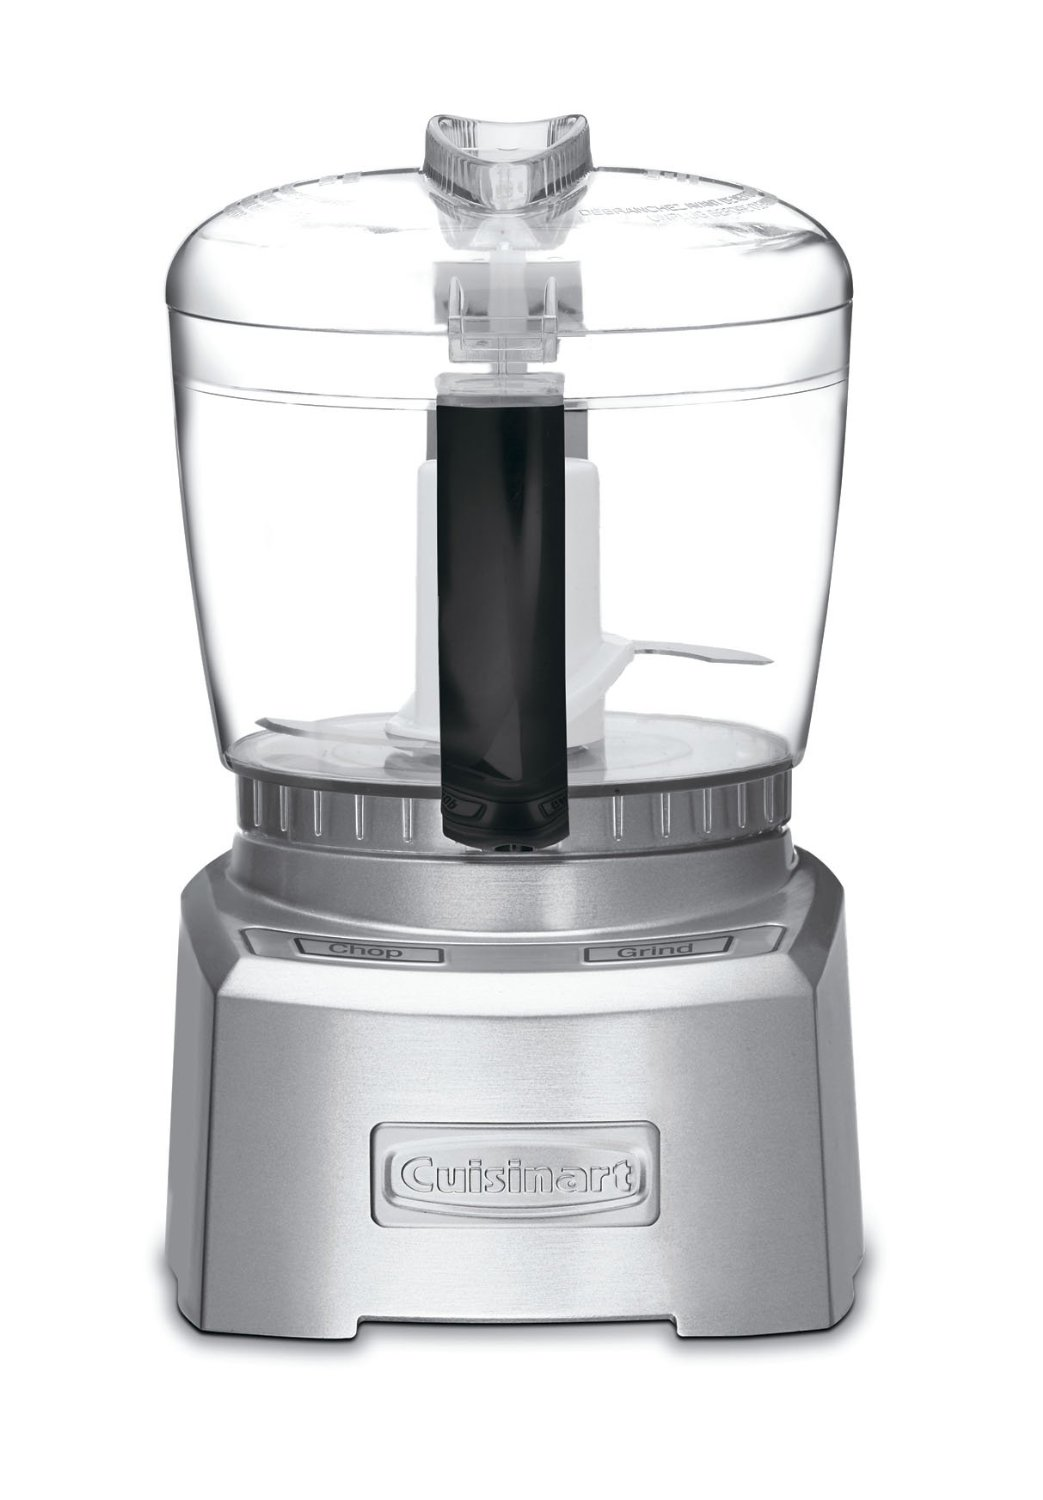 Cuisinart Elite Collection 4-Cup Chopper/Grinder – Available in 3 Colors